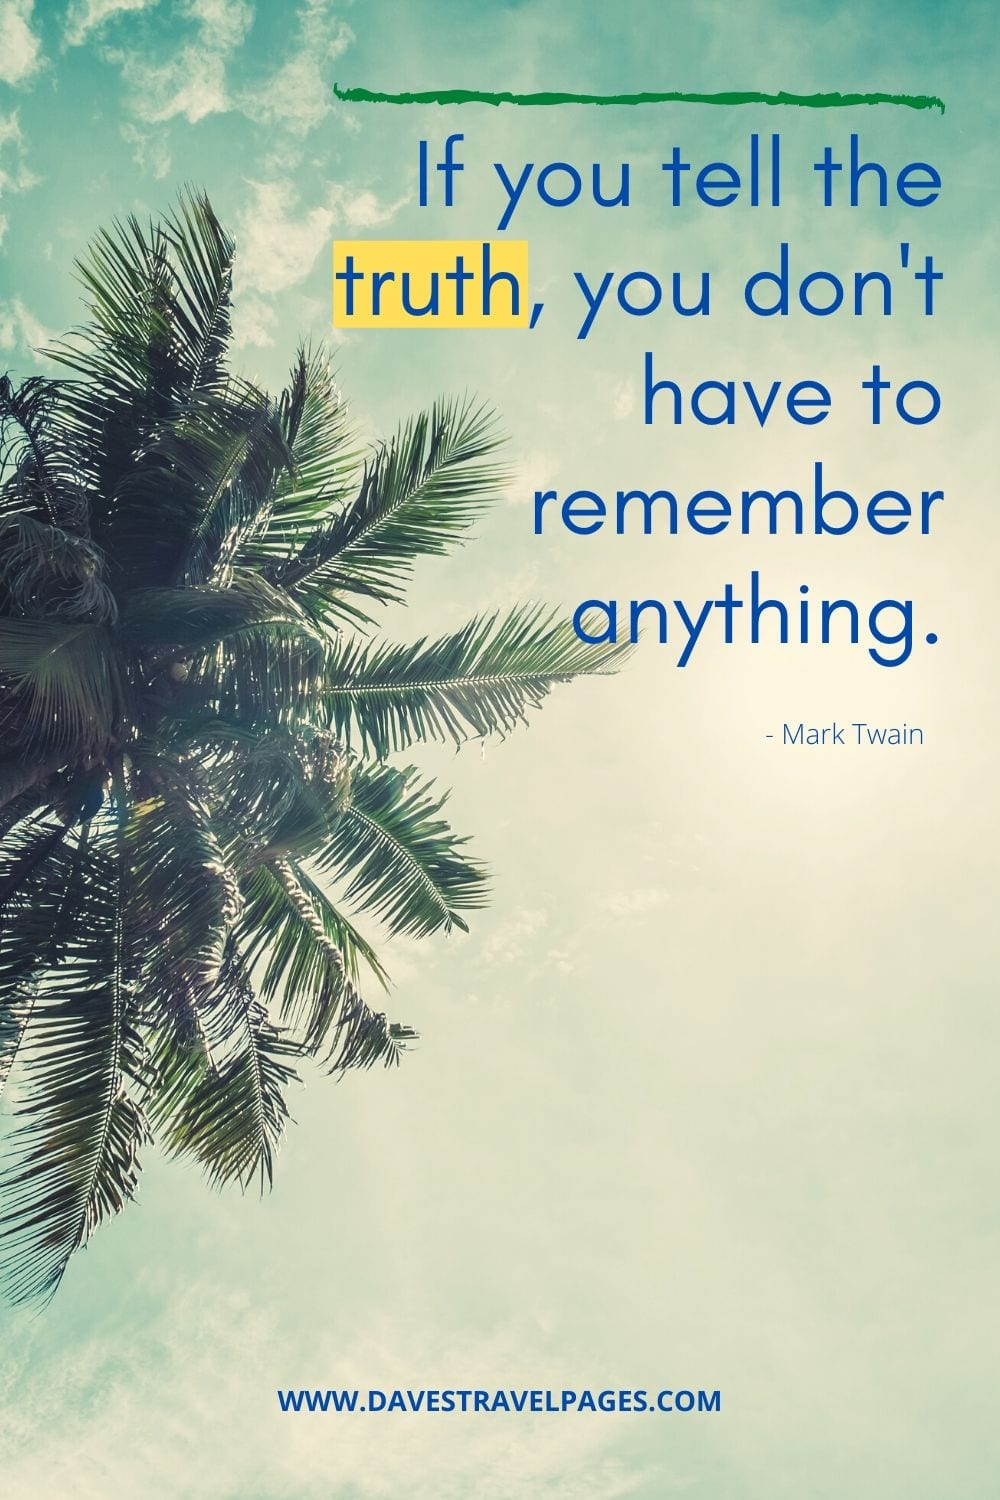 Mark Twain Quotes: If you tell the truth, you don't have to remember anything.